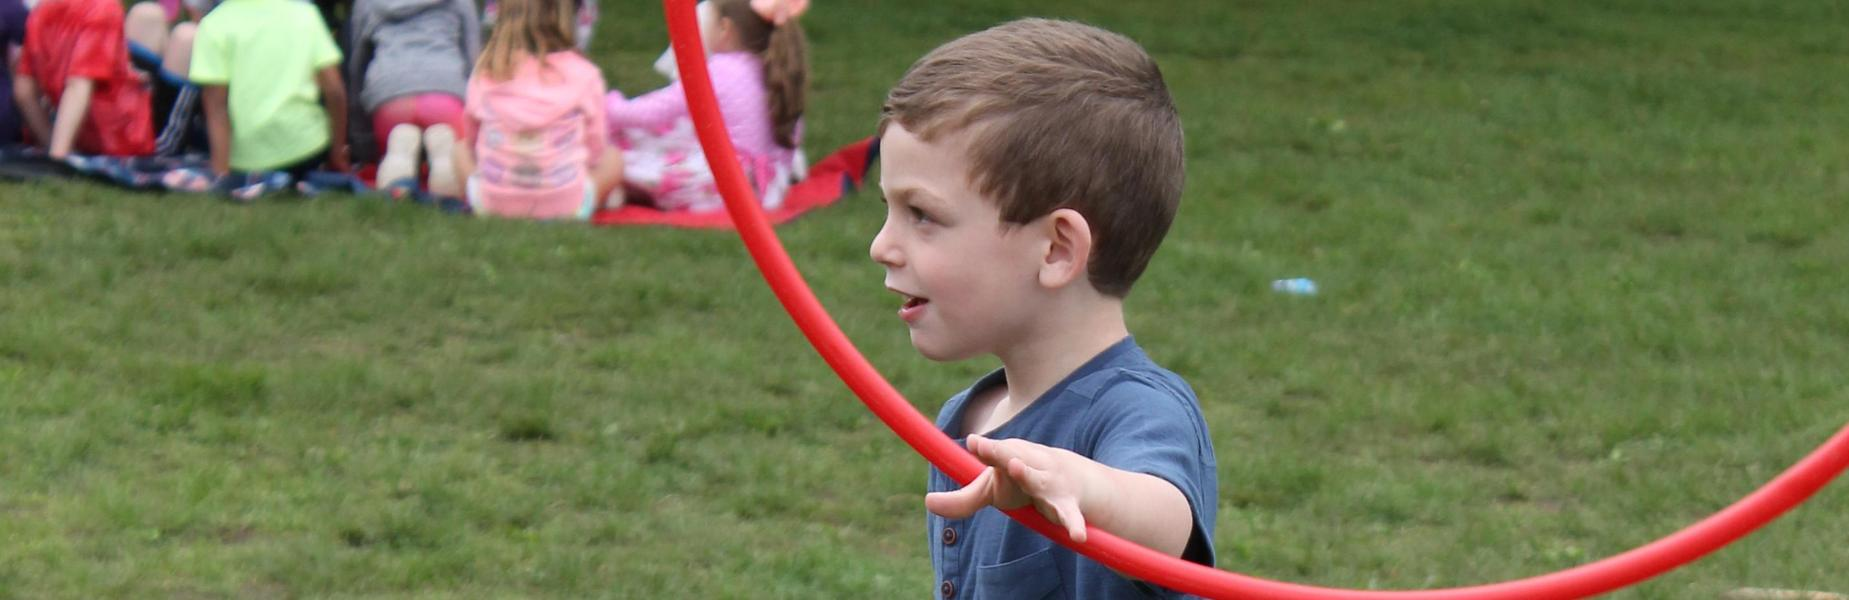 Kindergartner plays with hoola hoop.